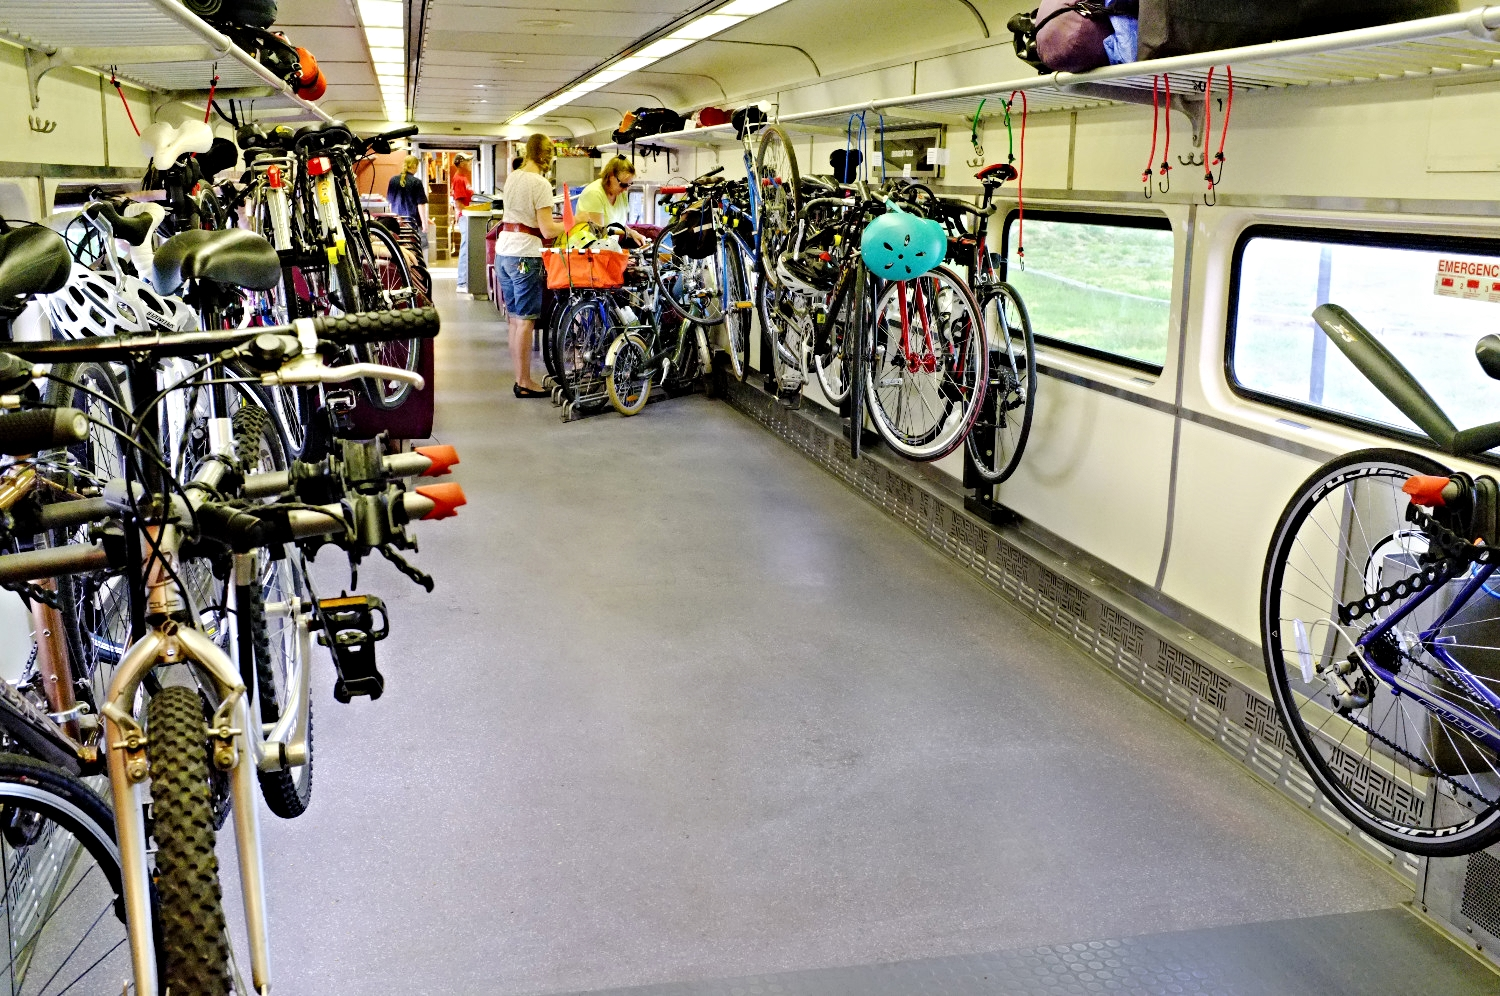 CapeFlyer's bike car is convenient for 3 reasons: 1) roll-on from the platform (no lifting), 2) floor and hanging bike storage and 3) IT'S NEXT TO THE BAR CAR!